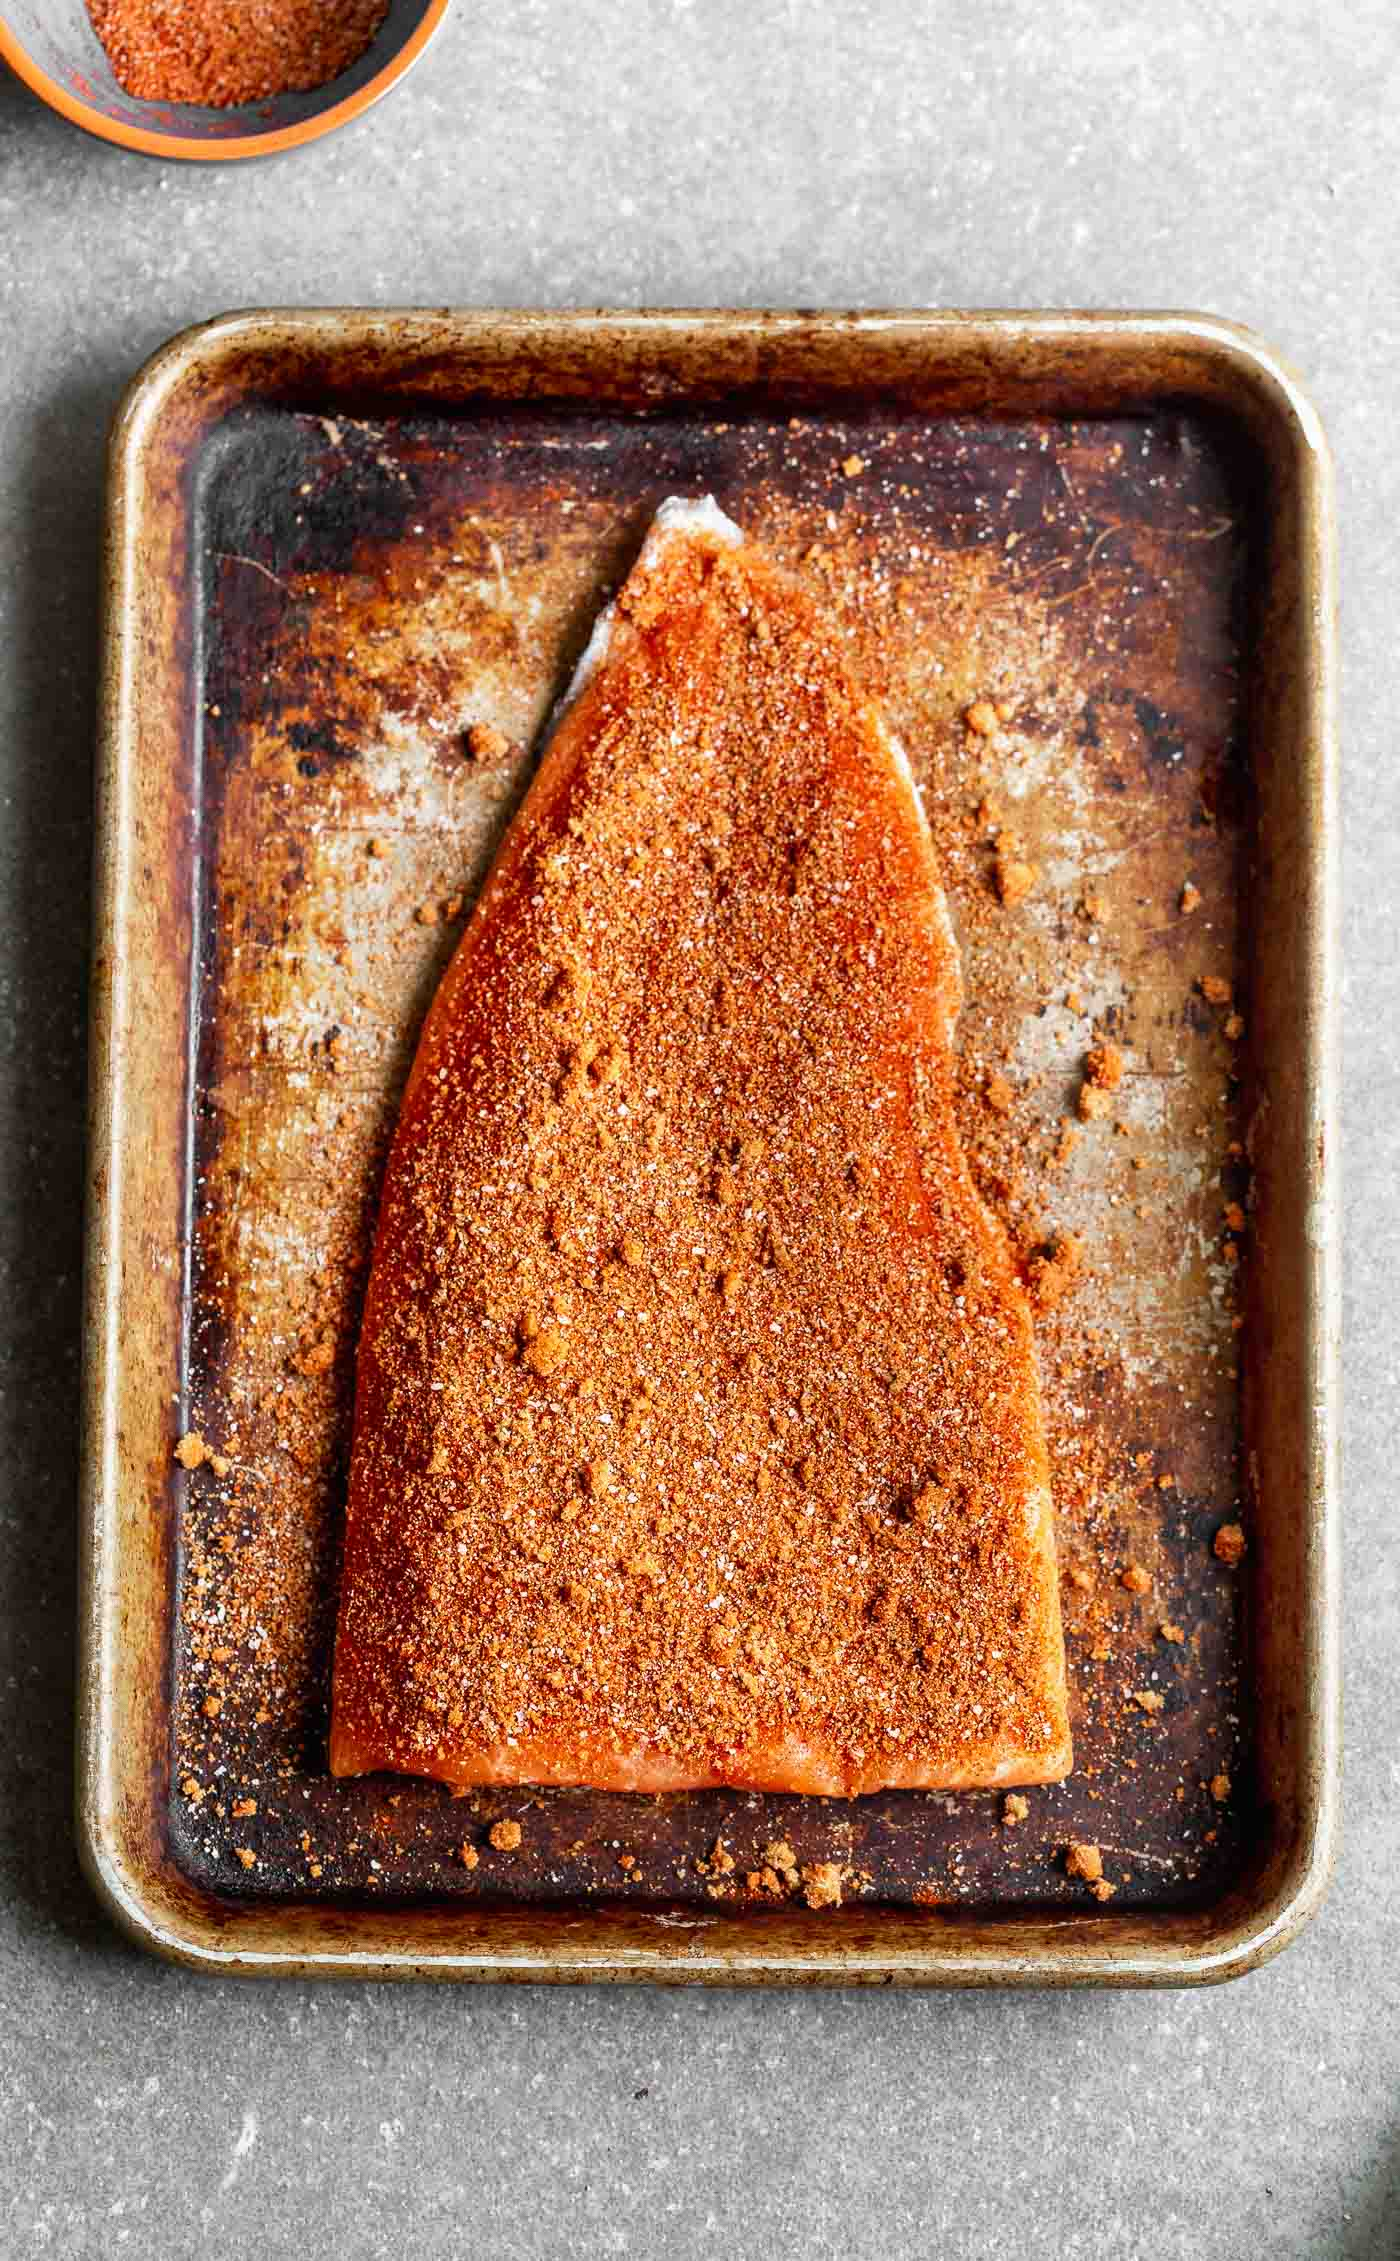 Press the rub into the side of the salmon.